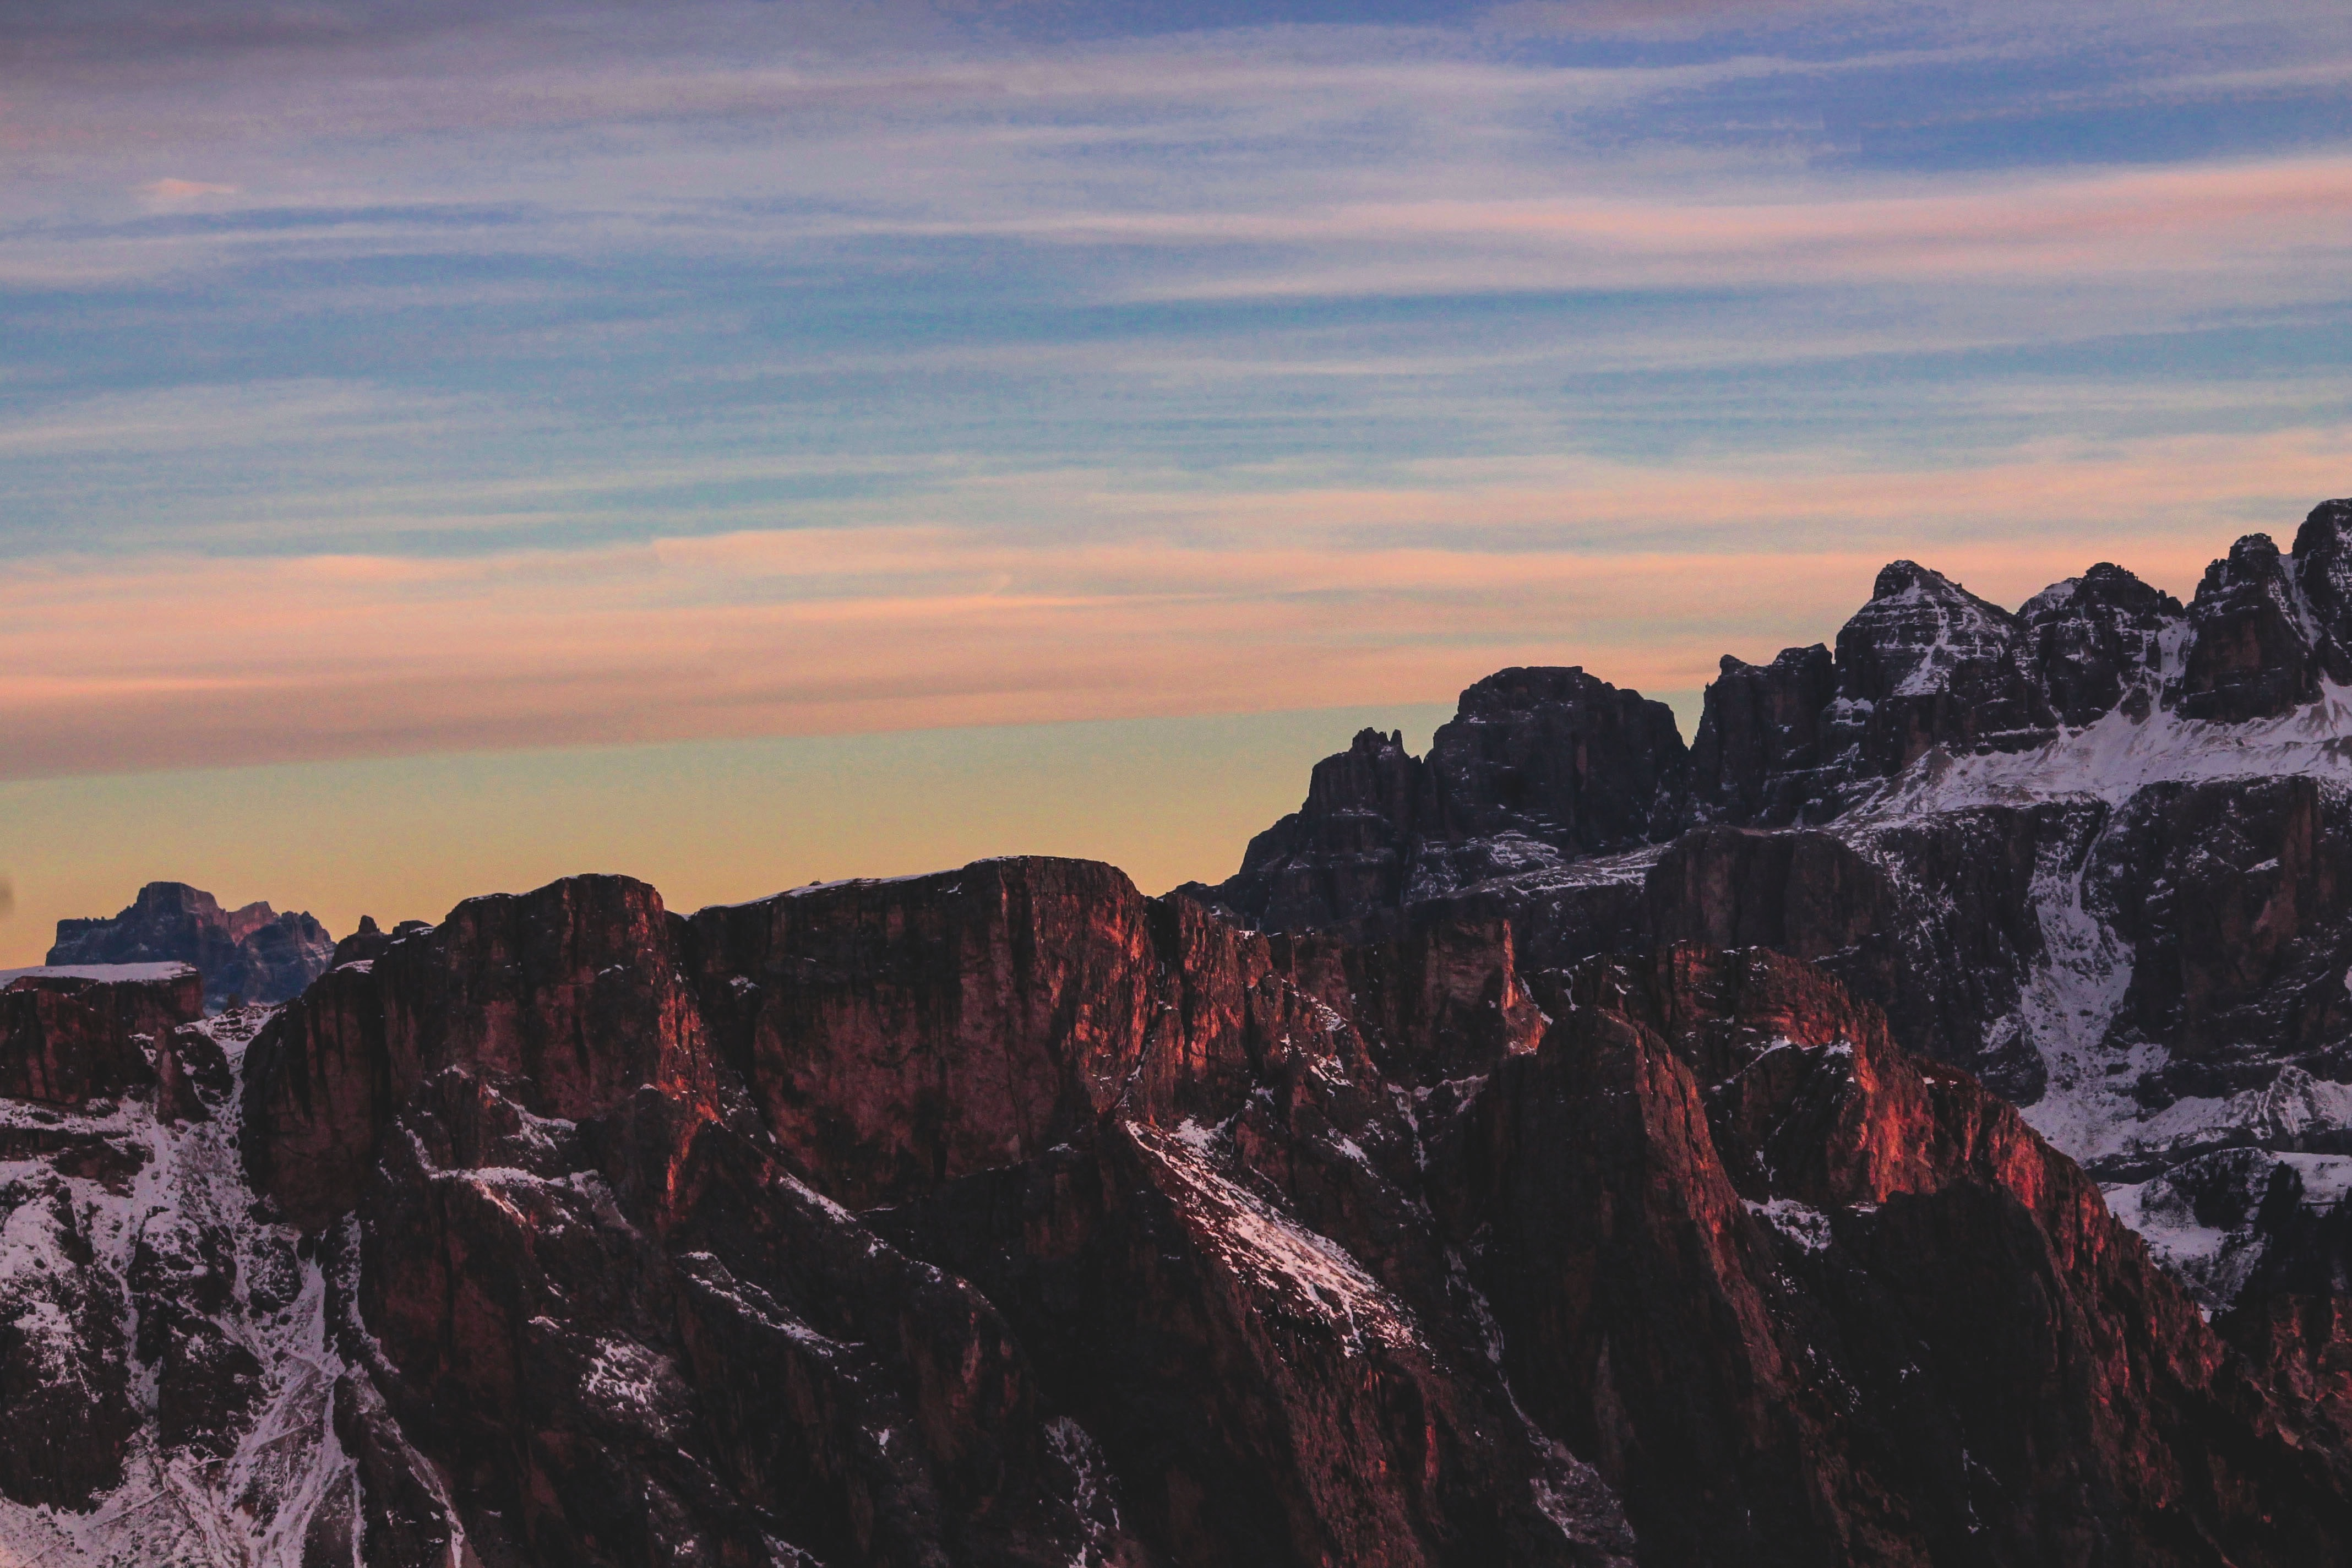 Sunset over the steep mountain crests in Seceda